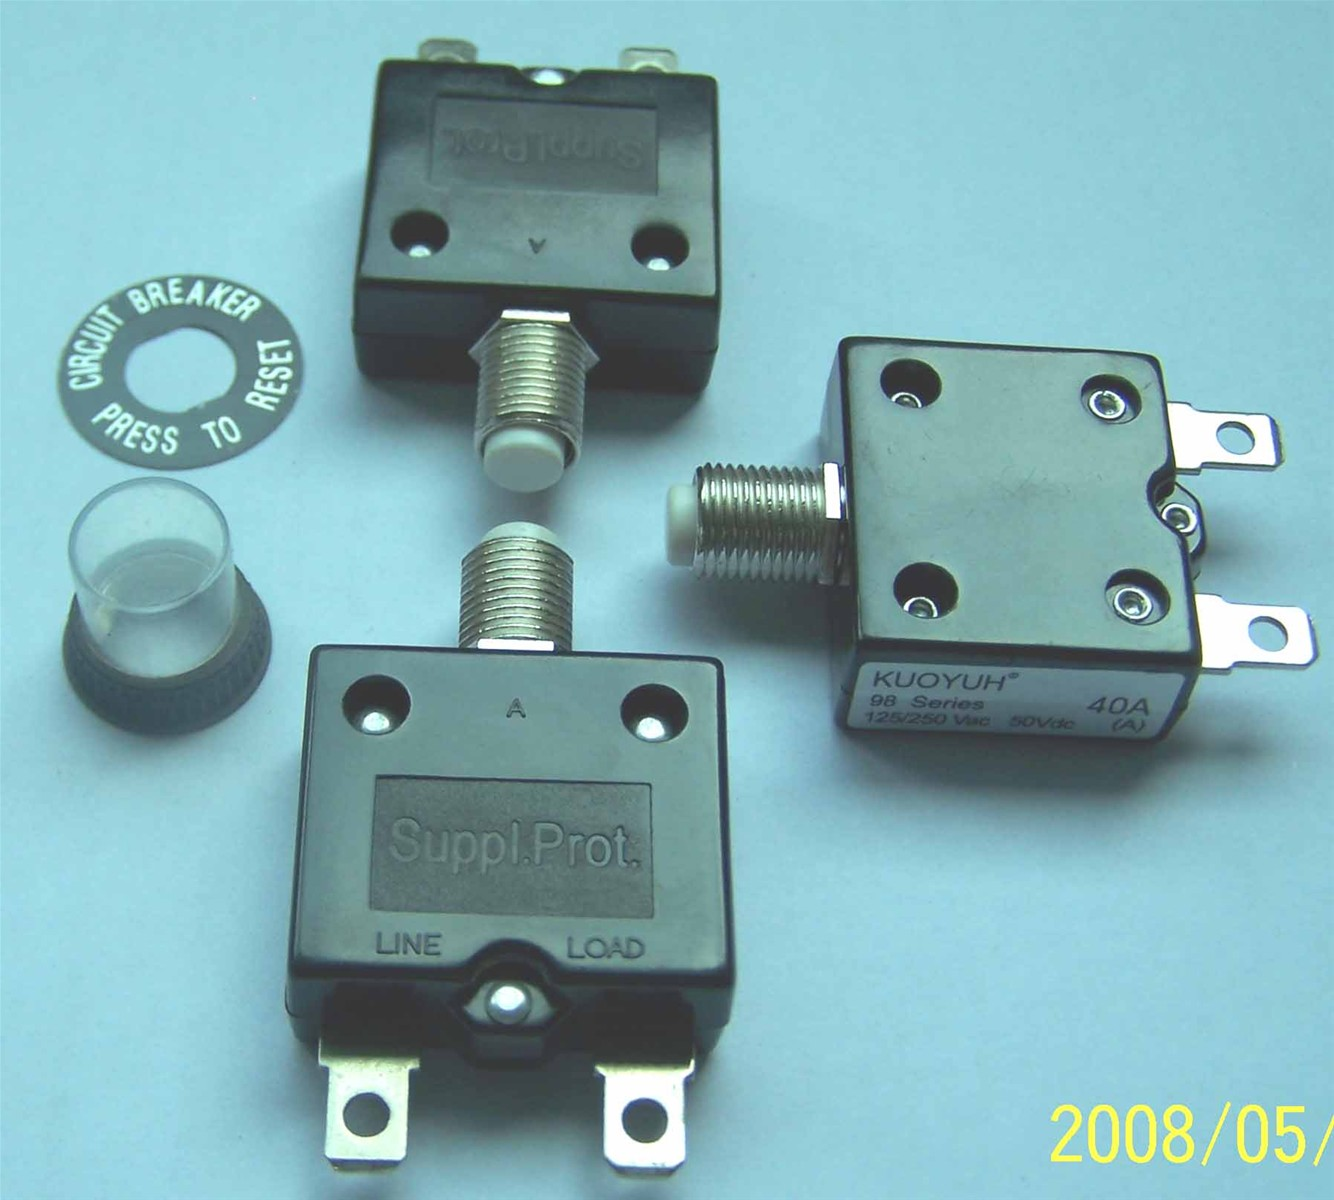 40A overload current circuit breaker purchasing, souring agent ...